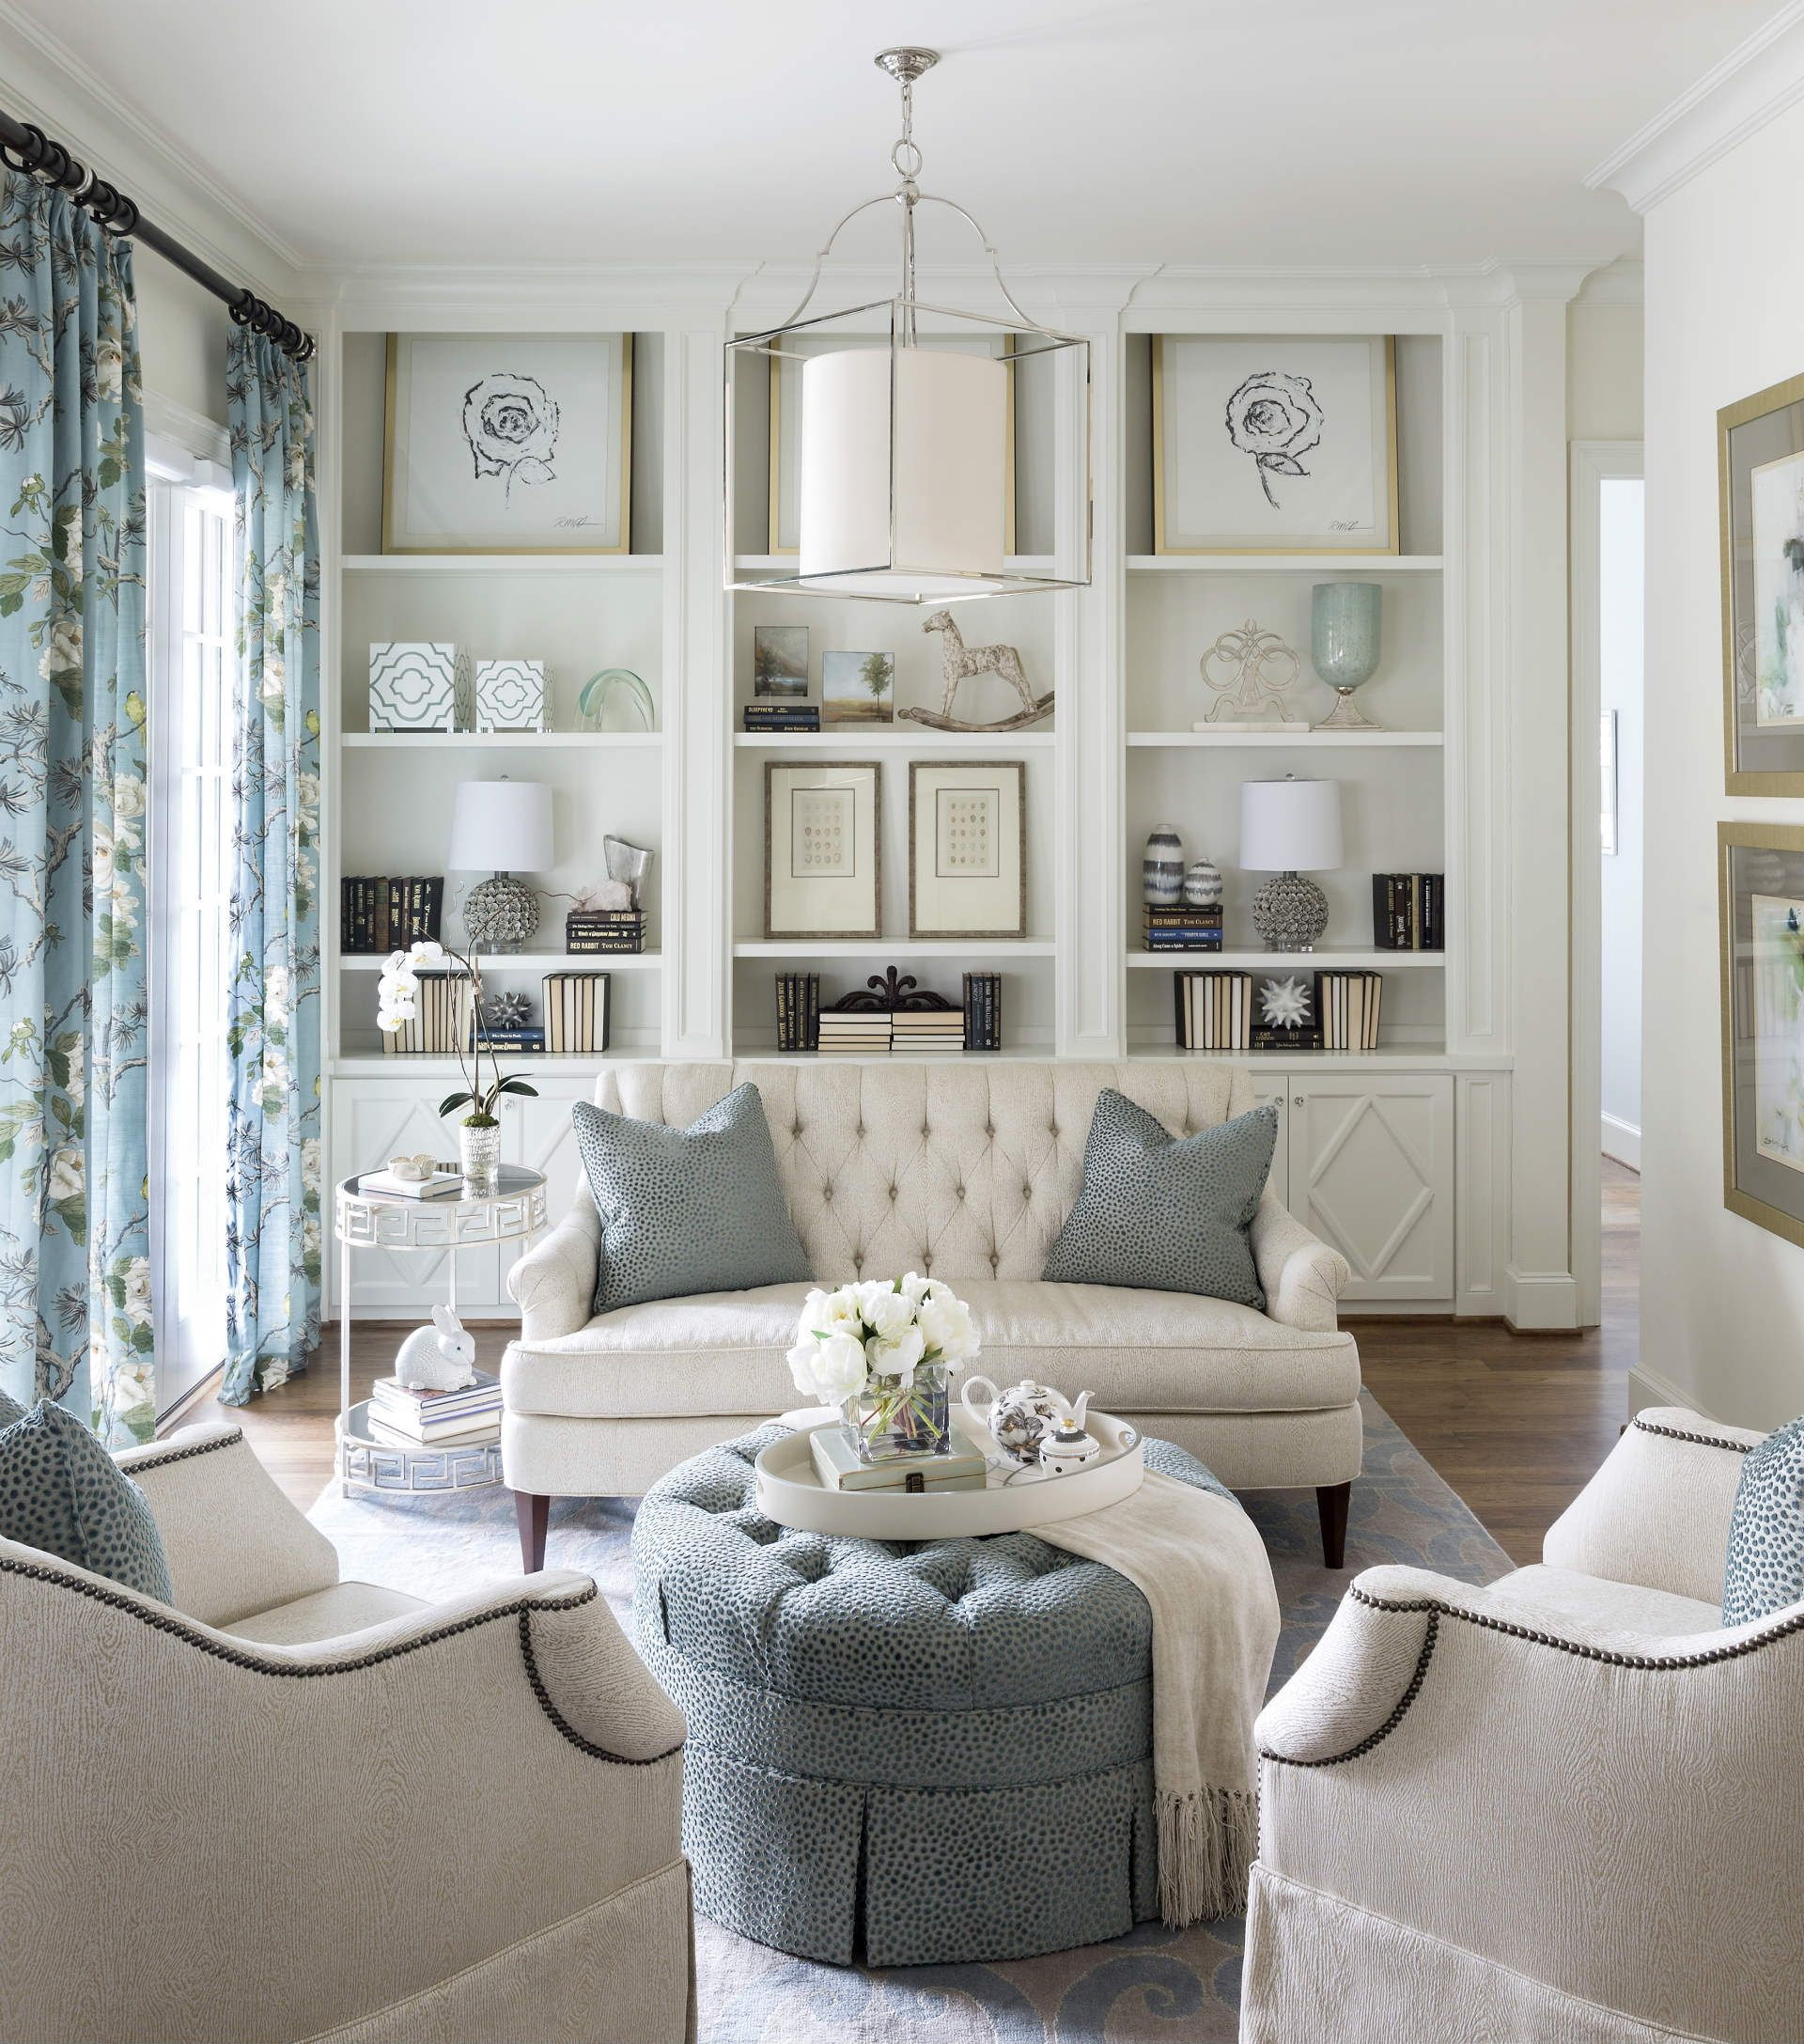 Home Design Ideas For Small Living Room: Southern Home Magazine